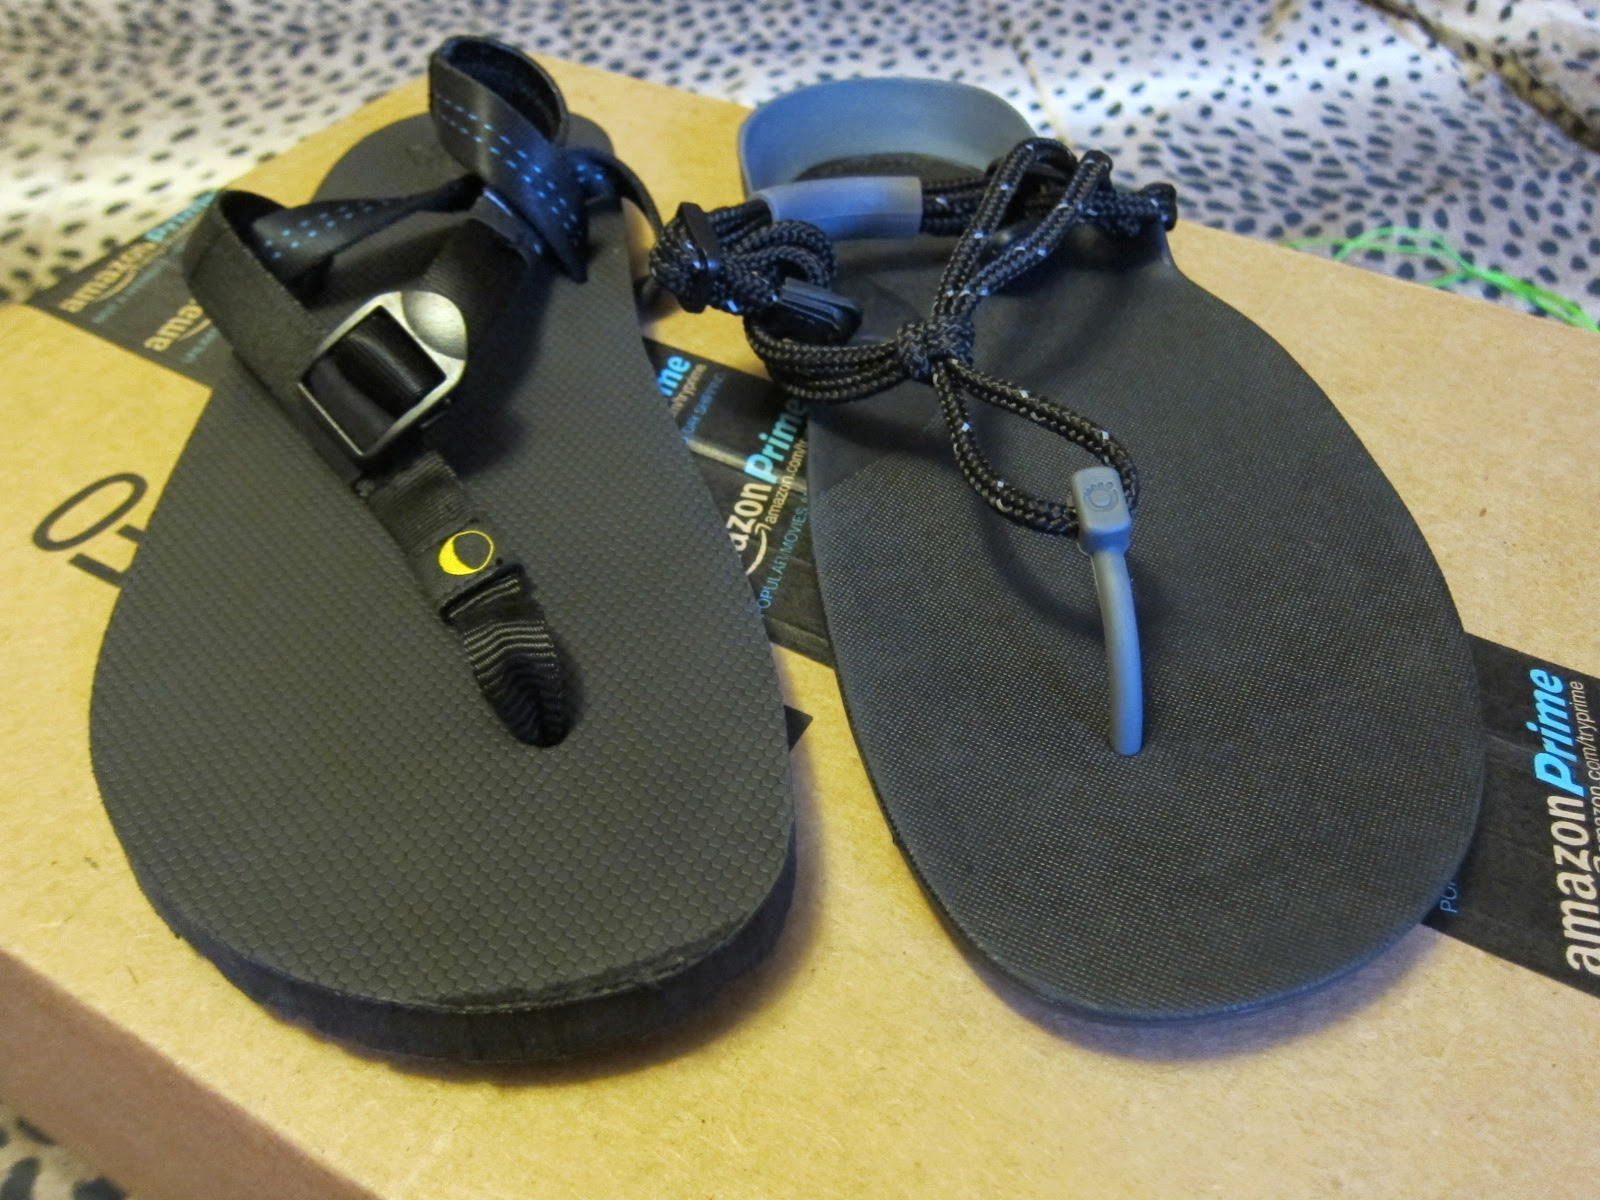 Luna Mono vs. Xero Shoes Sensori Sandals